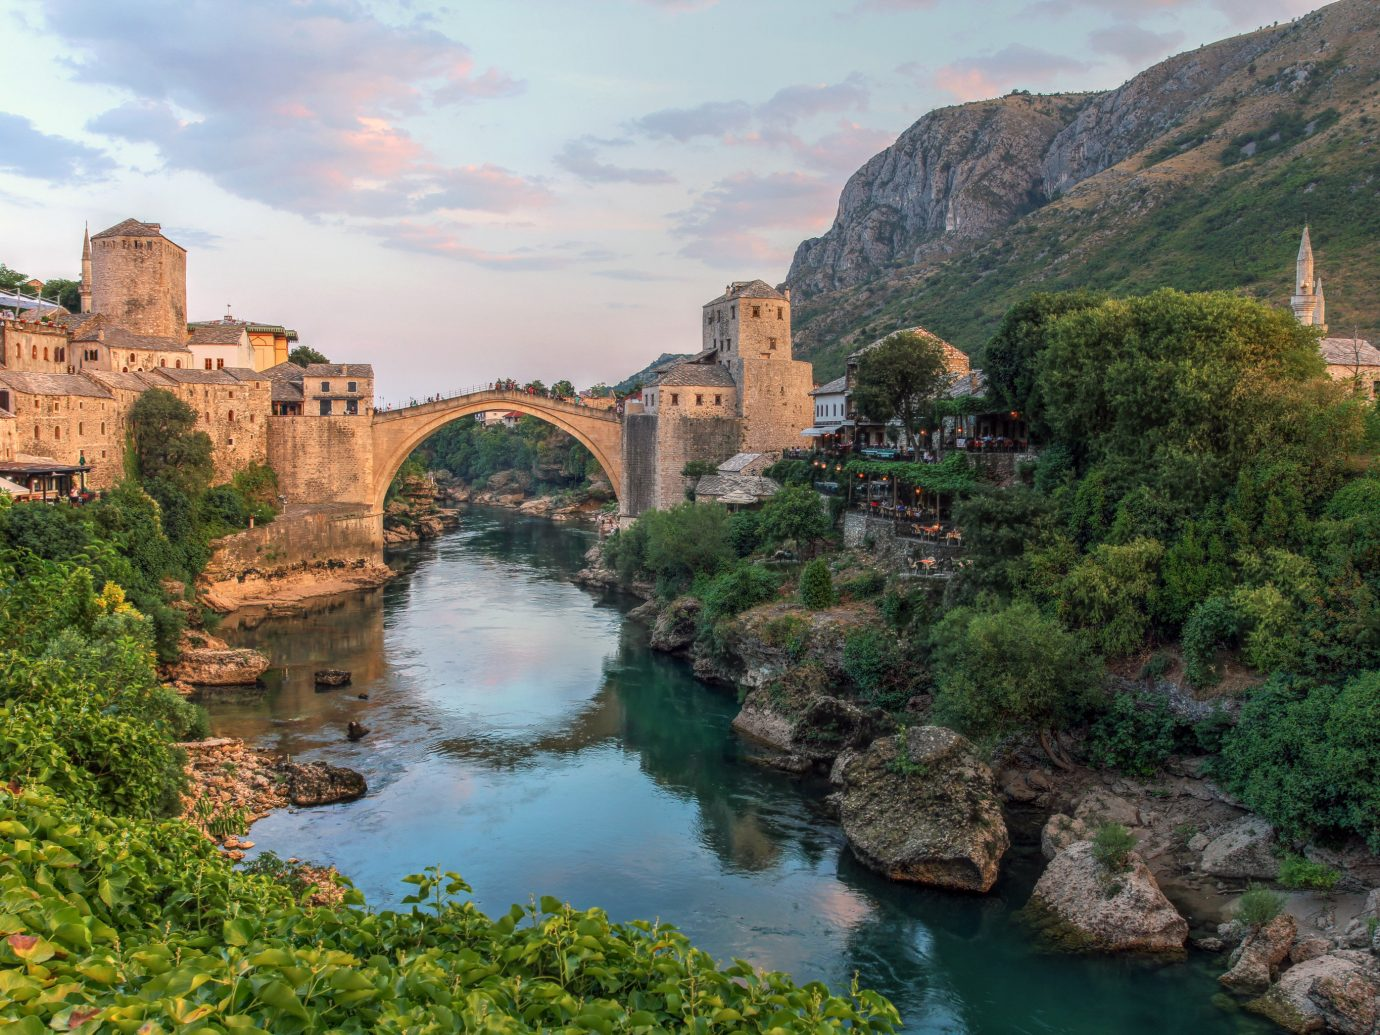 Secret Getaways Trip Ideas outdoor water tree valley River mountain landform geographical feature Town canyon tourism Nature vacation landscape cliff castle flower waterway traveling terrain surrounded